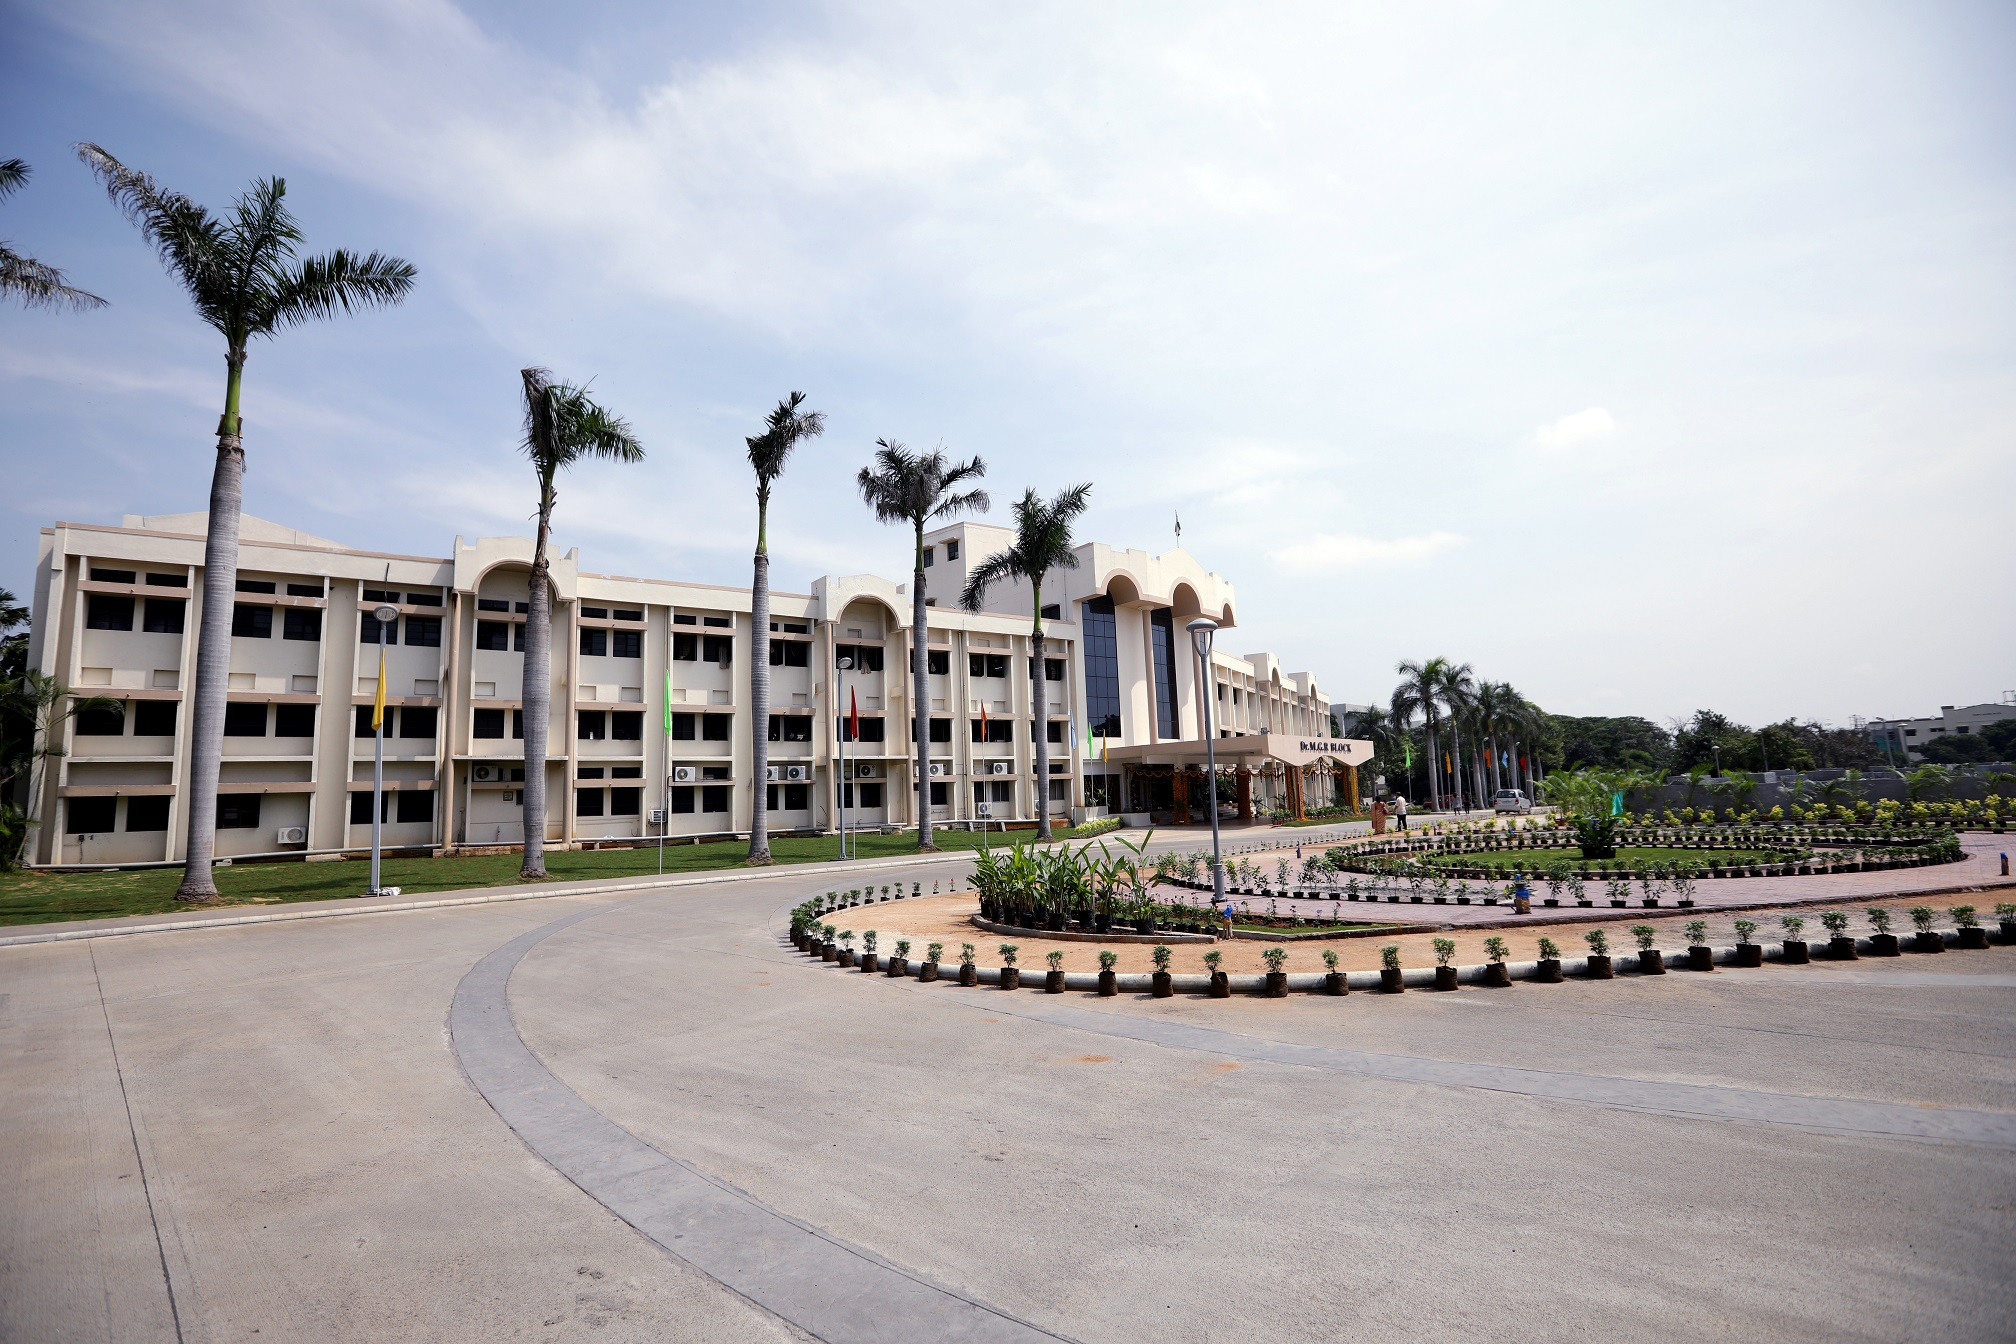 Vellore Institute of Technology (VIT) campus in India. White building with palm trees.